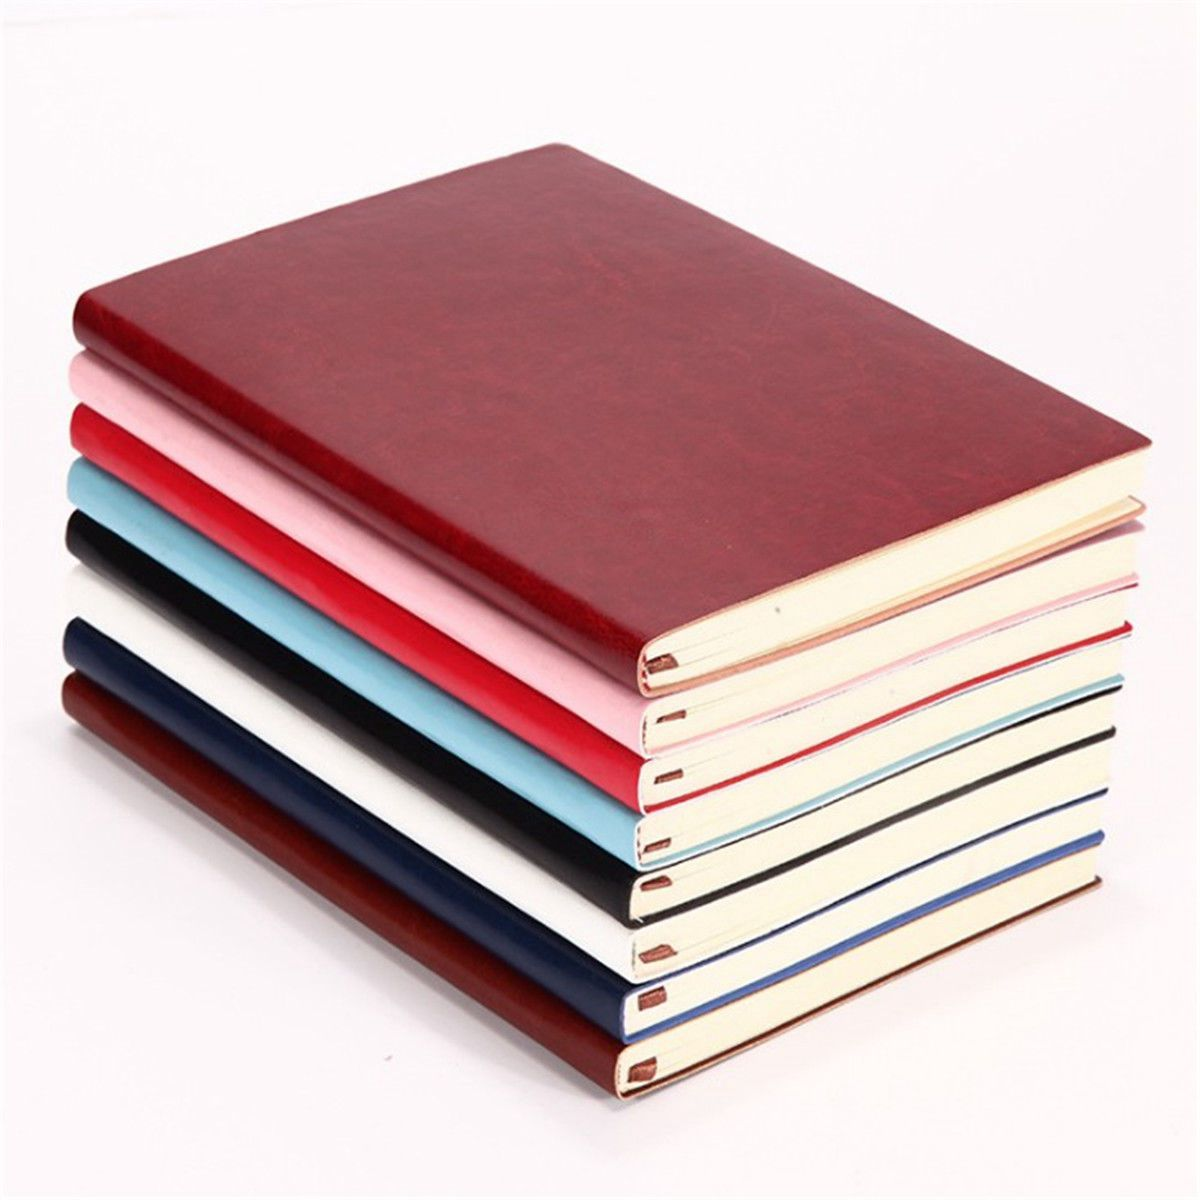 6 Color Random Soft Cover PU Leather Notebook Writing Journal 100 Page Lined Diary Book stable page 6